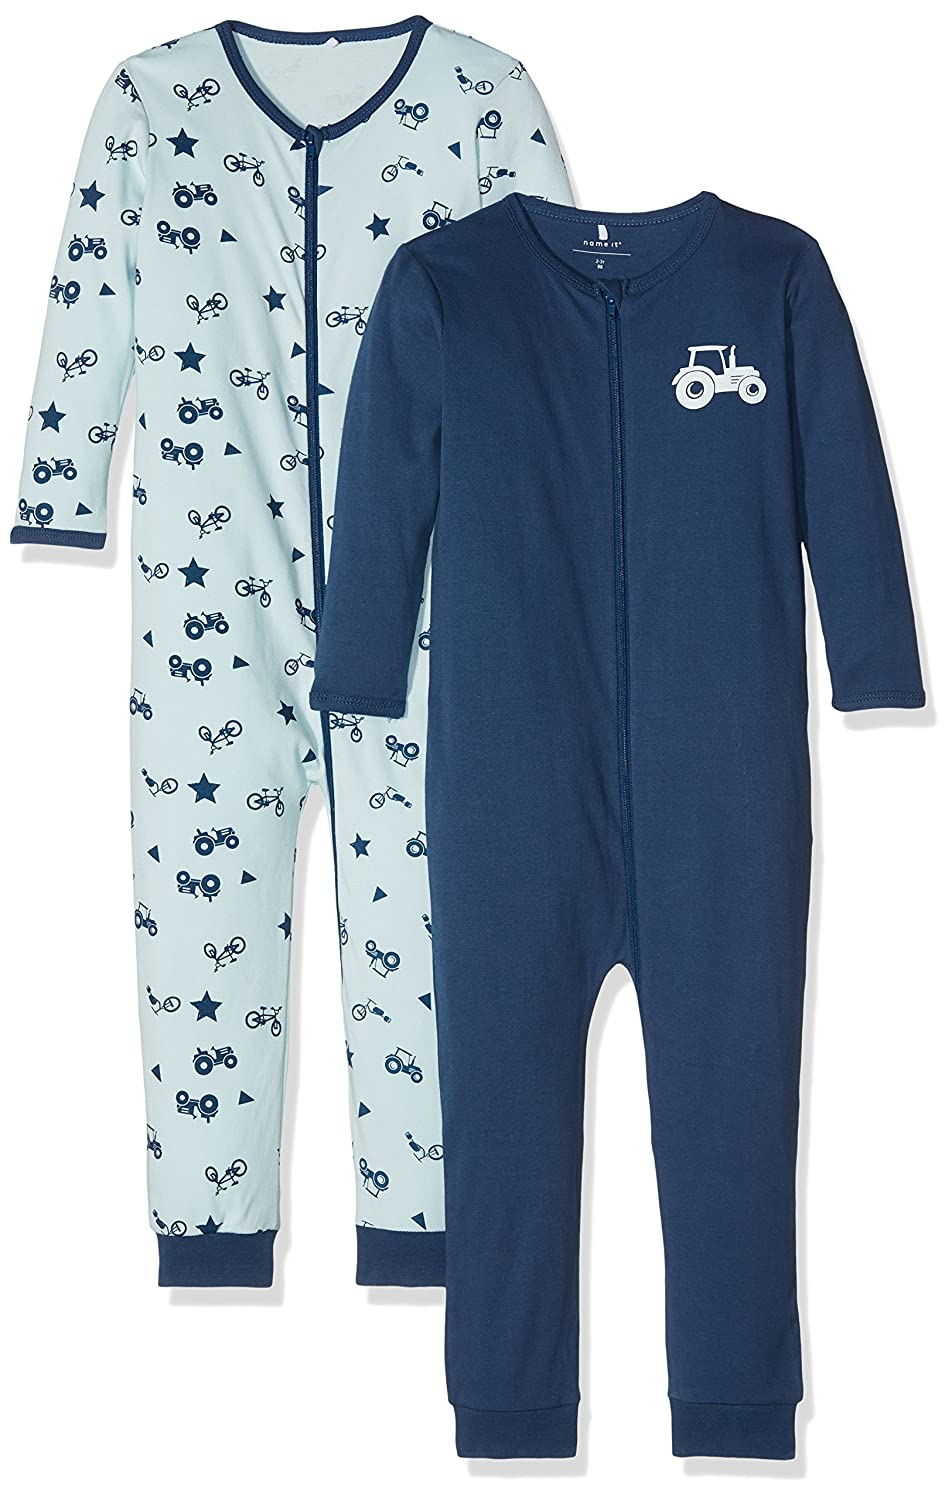 Name It Baby Boys' Sleepsuit Pack of 2 13145661